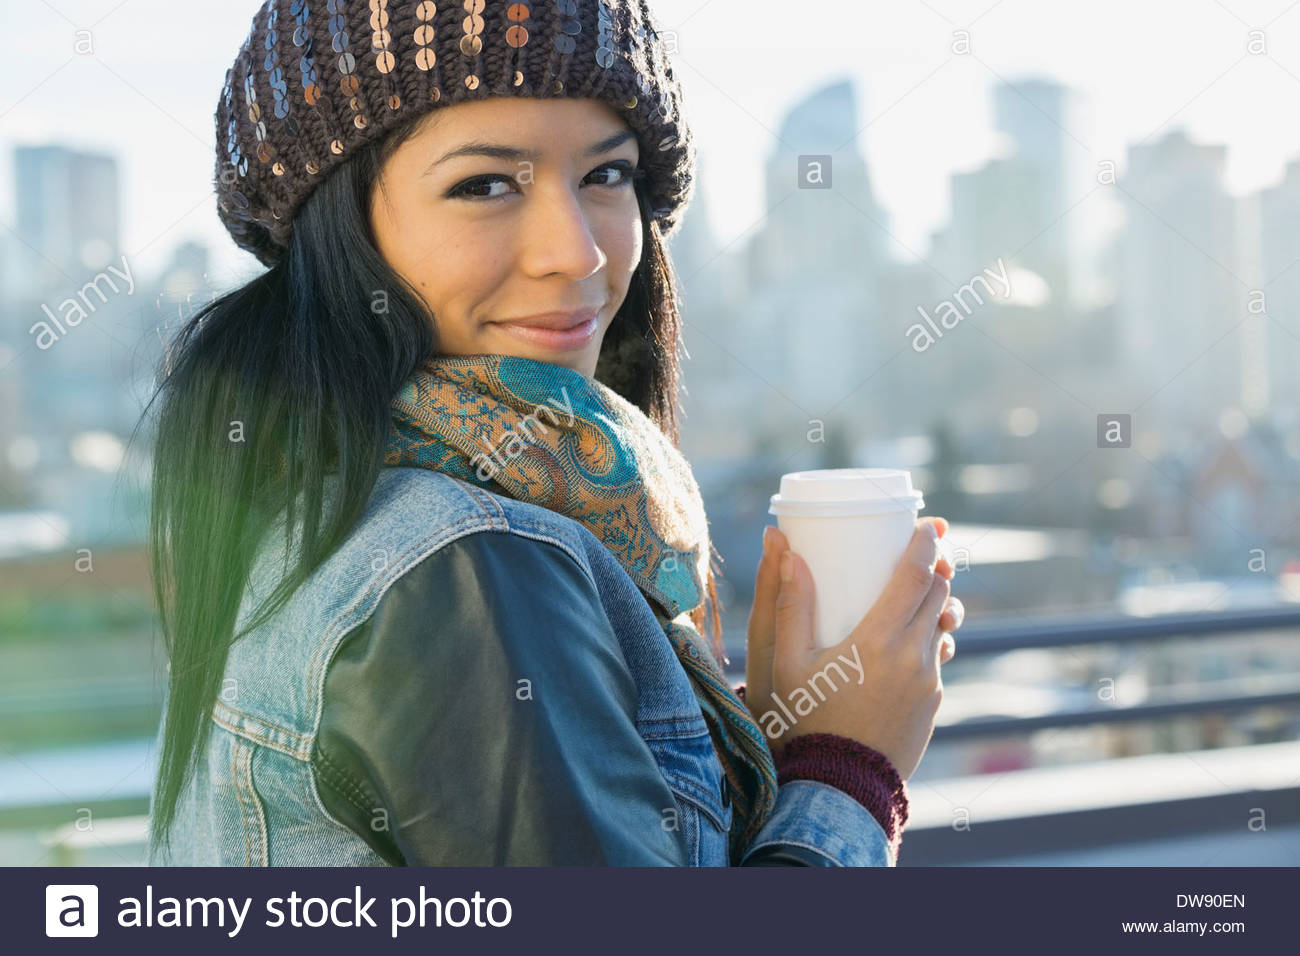 Portrait of woman holding disposable coffee cup - Stock Image